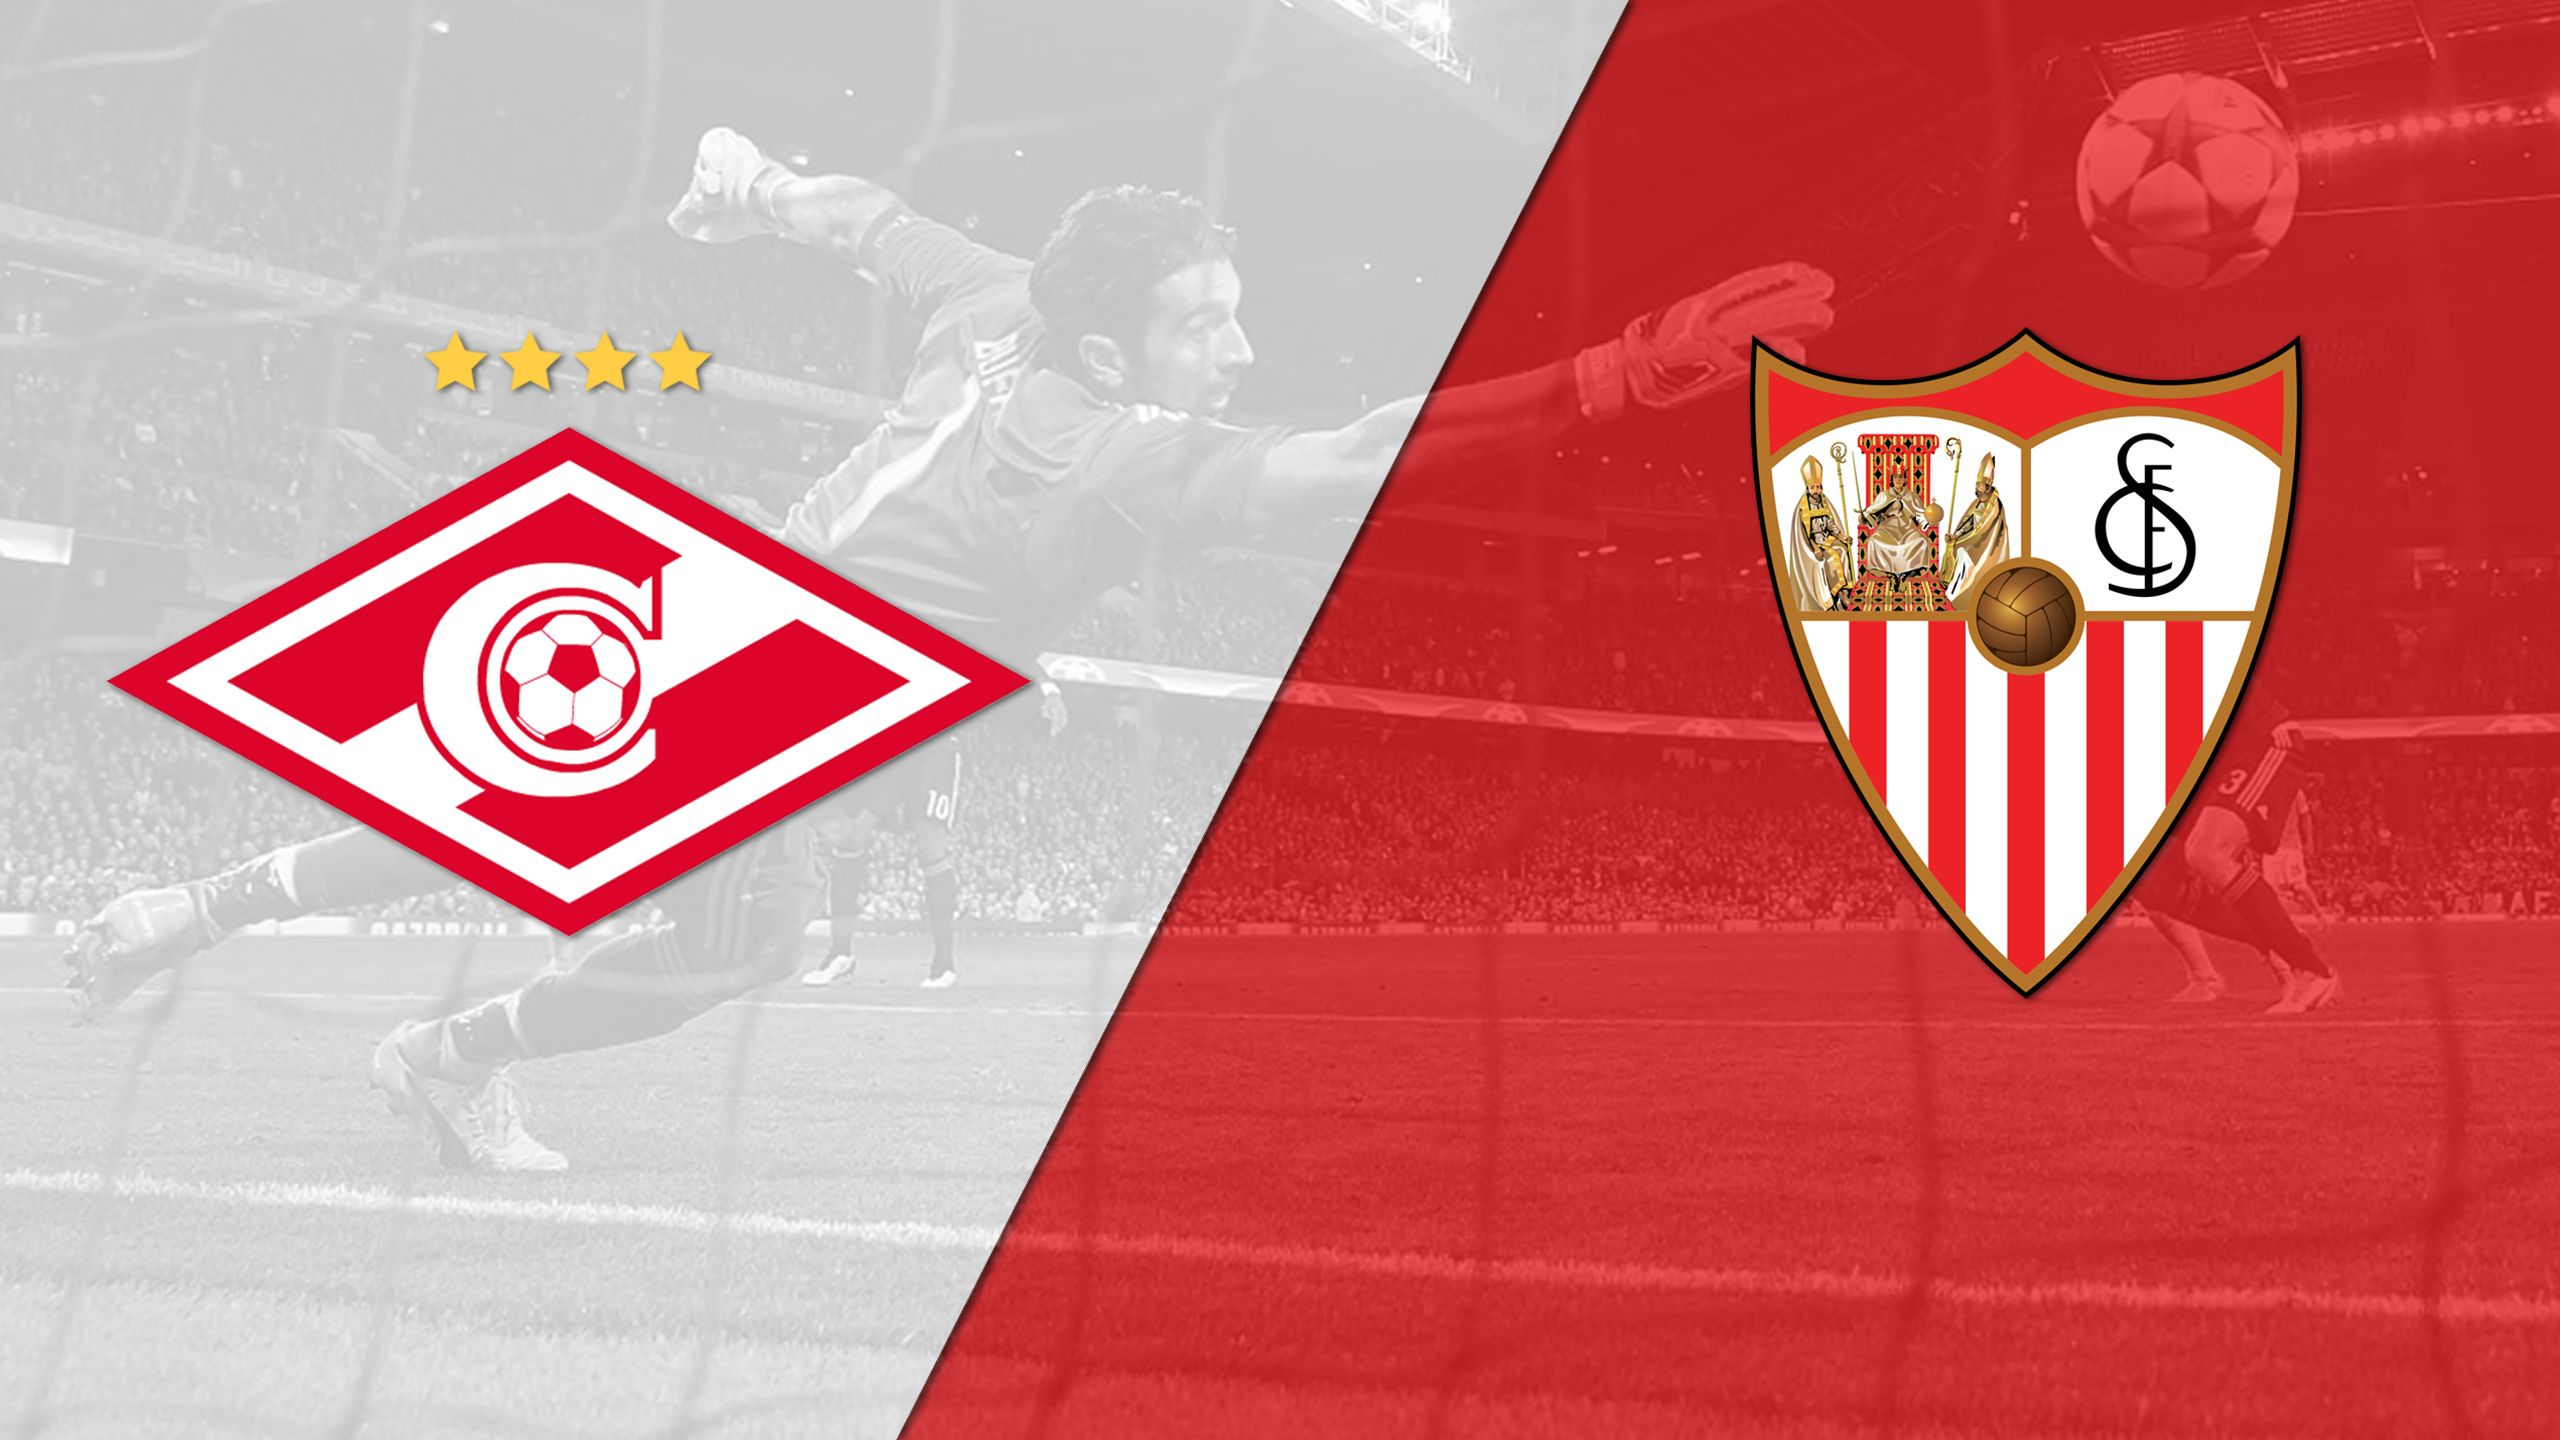 In Spanish - Spartak Moskva vs. Sevilla (Group Stage #3) (UEFA Champions League)